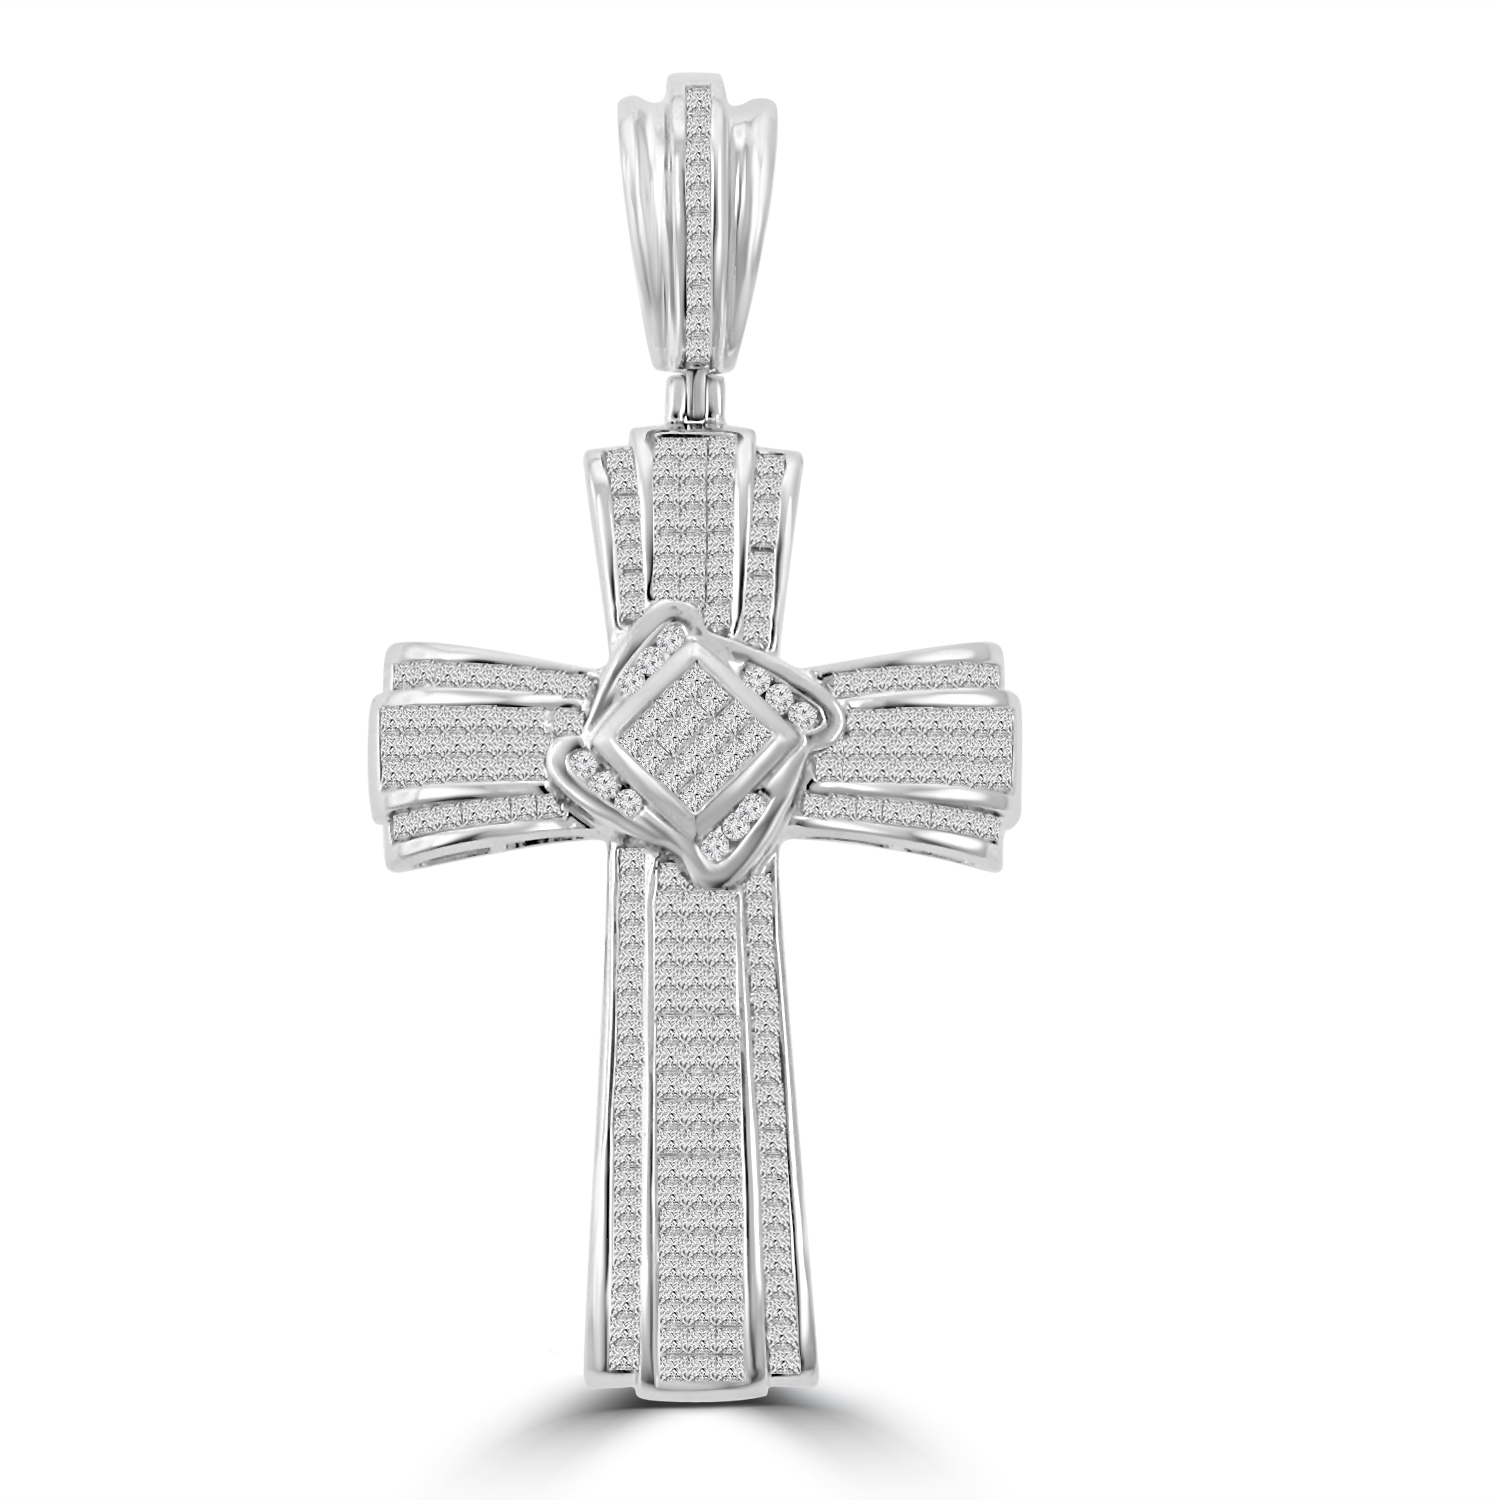 Details About 525 Ct Tw Men's Princess Cut Invisible Set Diamond Cross Pendant: Wedding Band With Cross Pendant At Websimilar.org